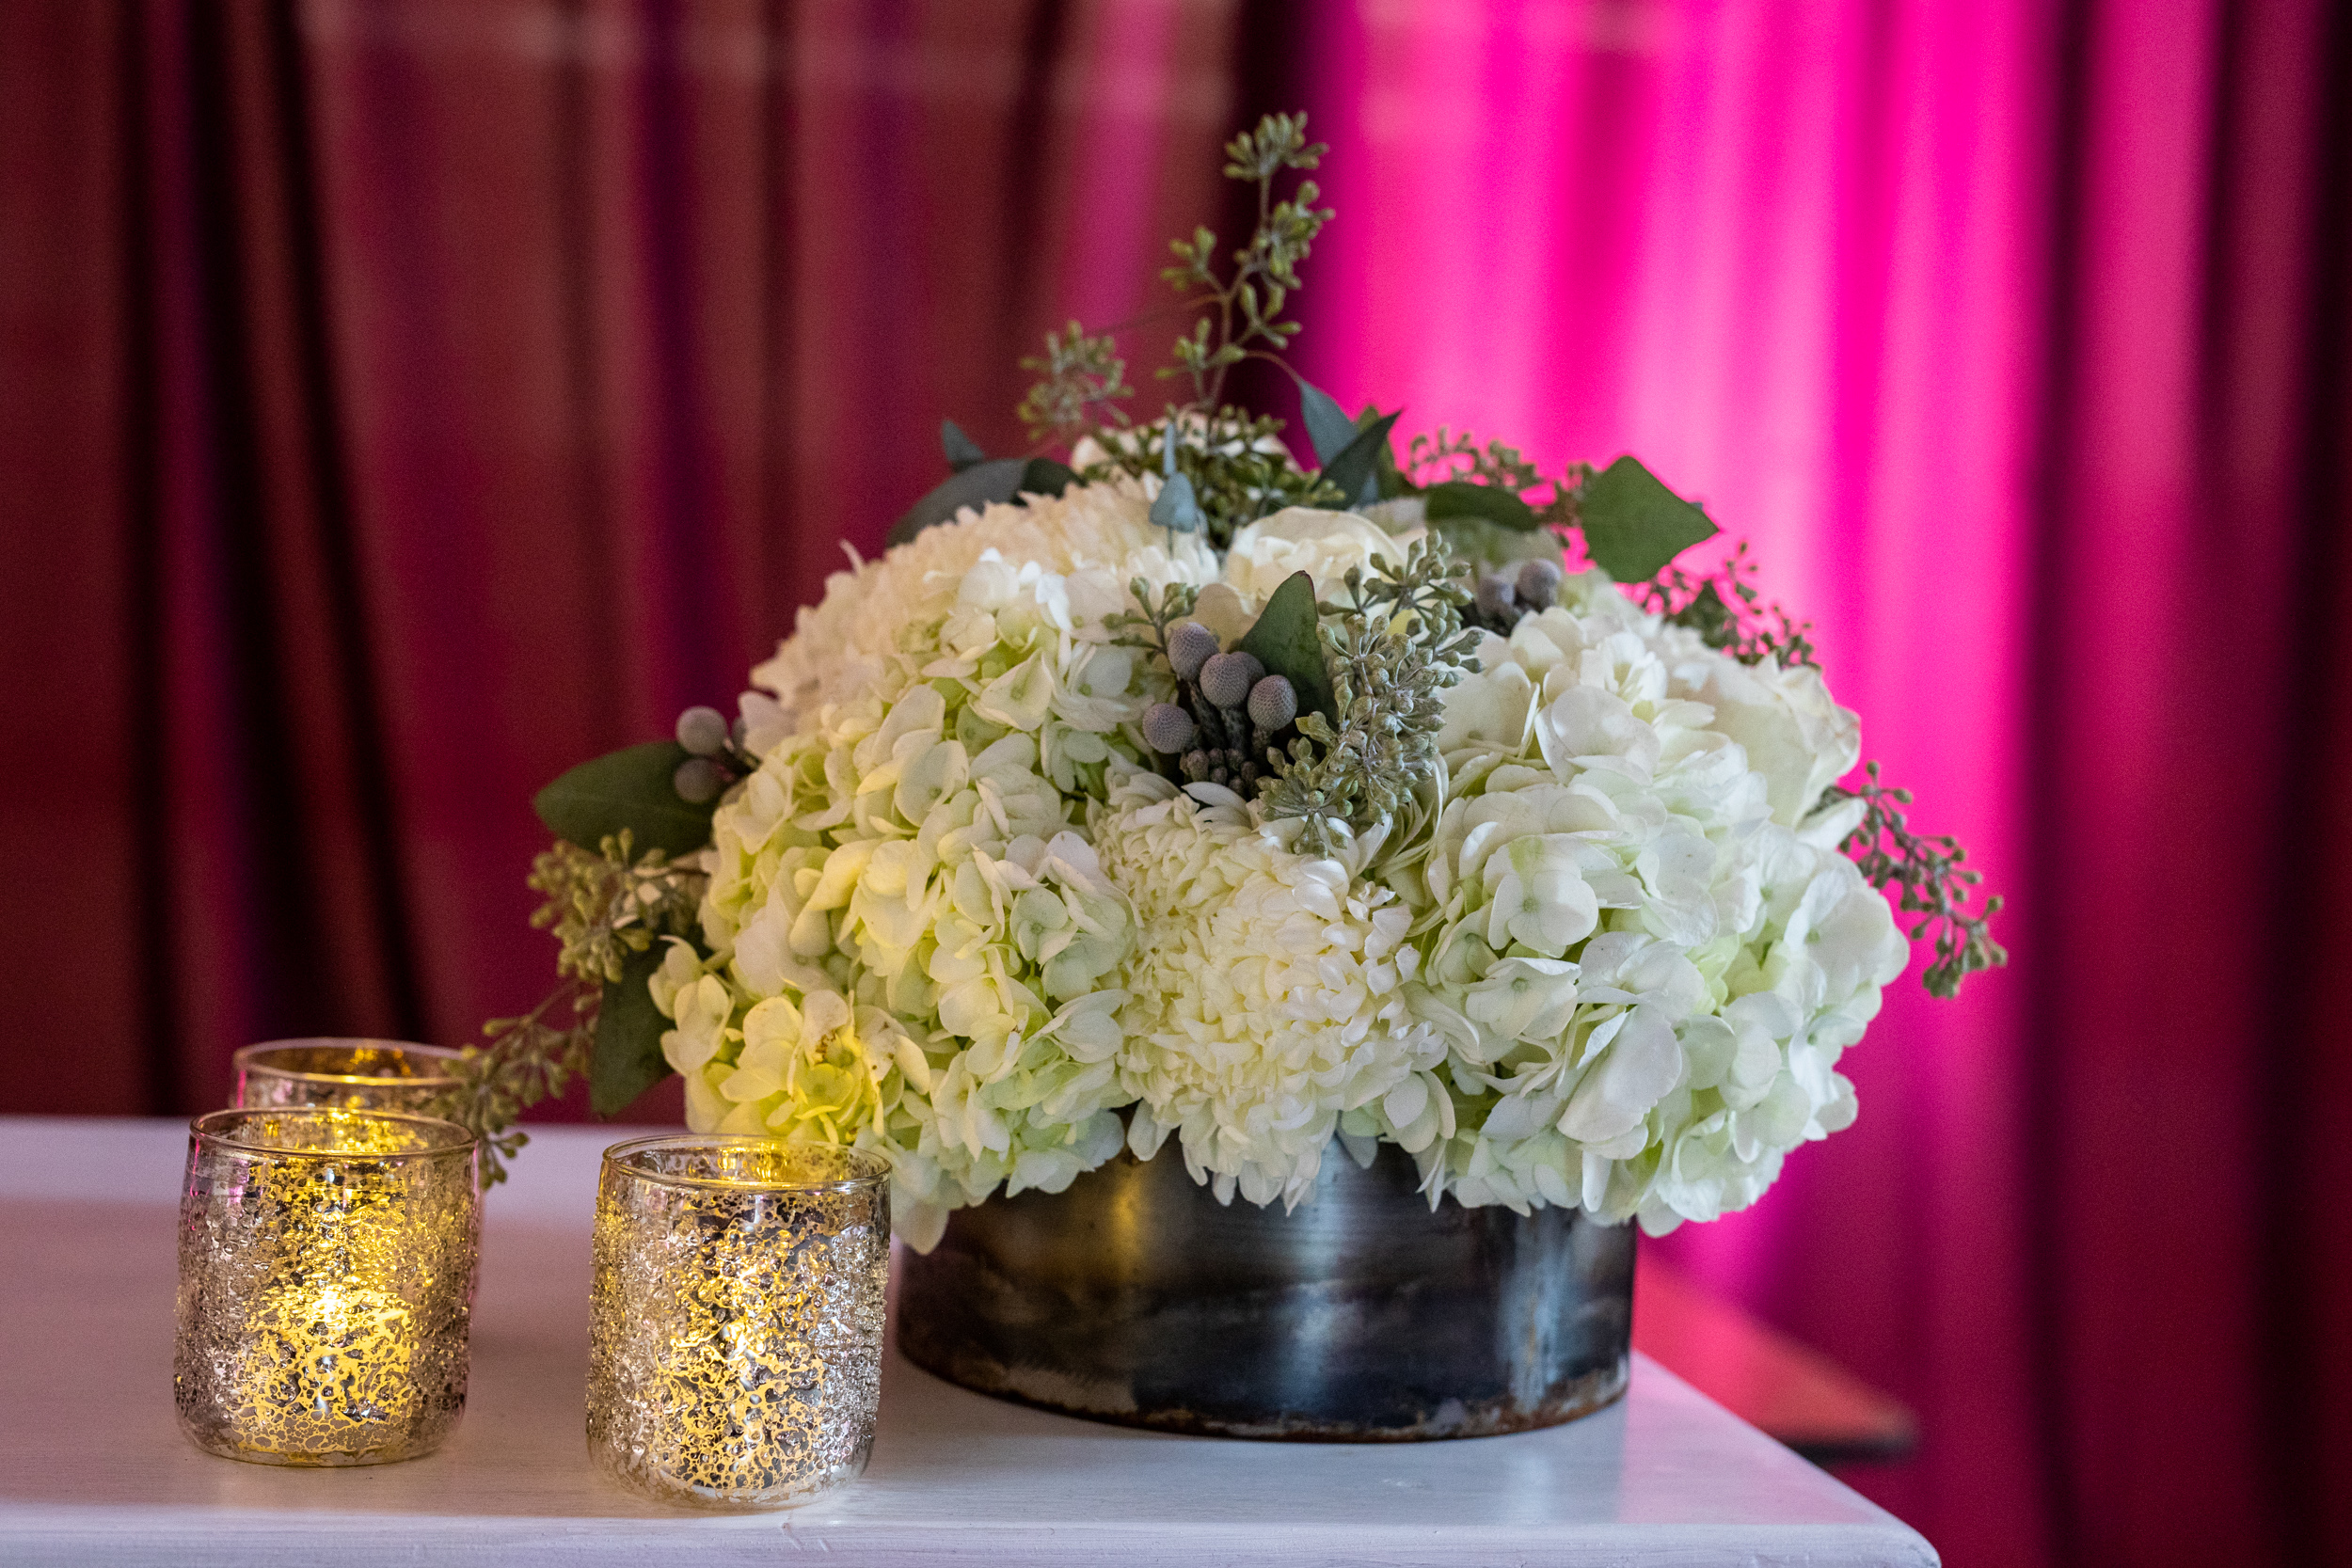 Corporate_Production_Phillips_Exeter_Academy_Pizzuti_Awards_Dinner_floral_arrangements